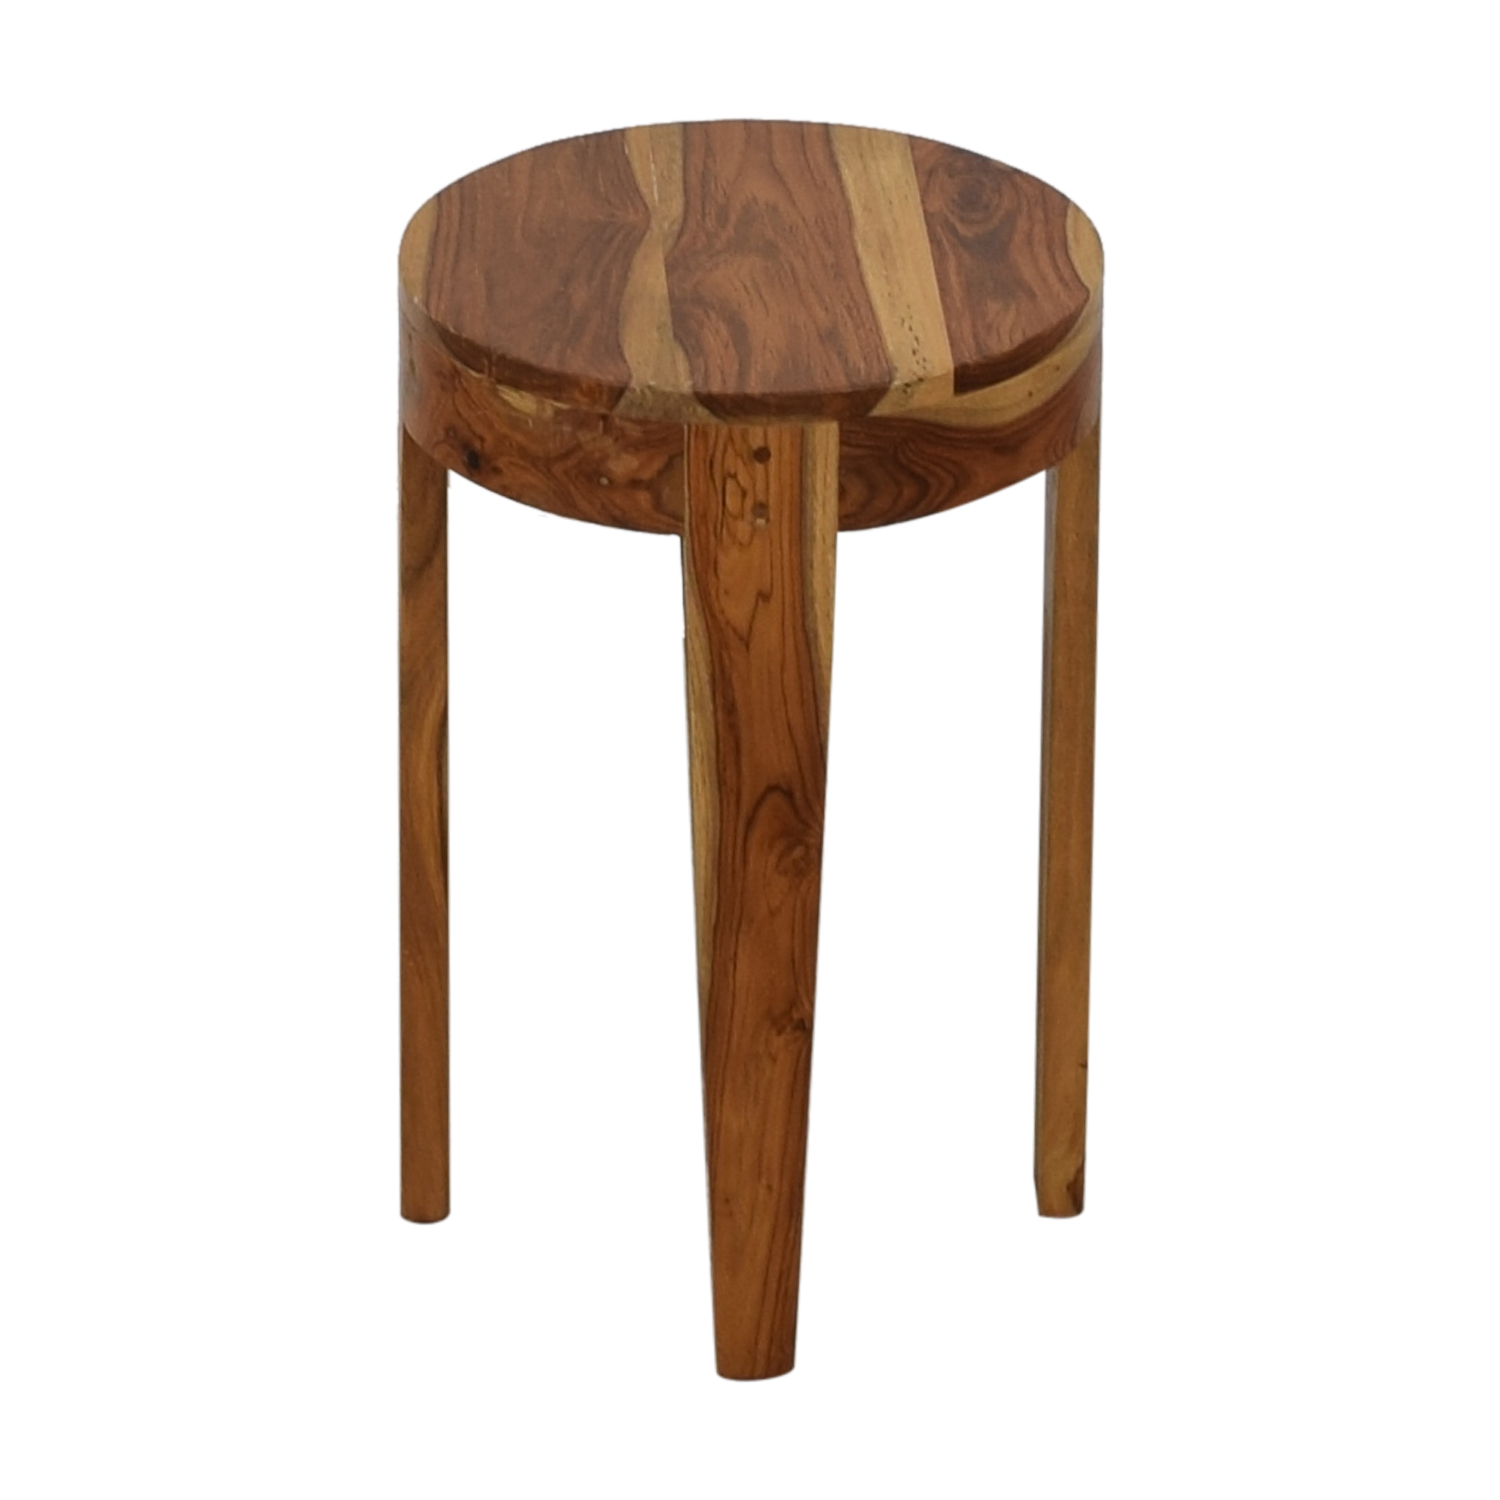 52 off target target small round accent table tables